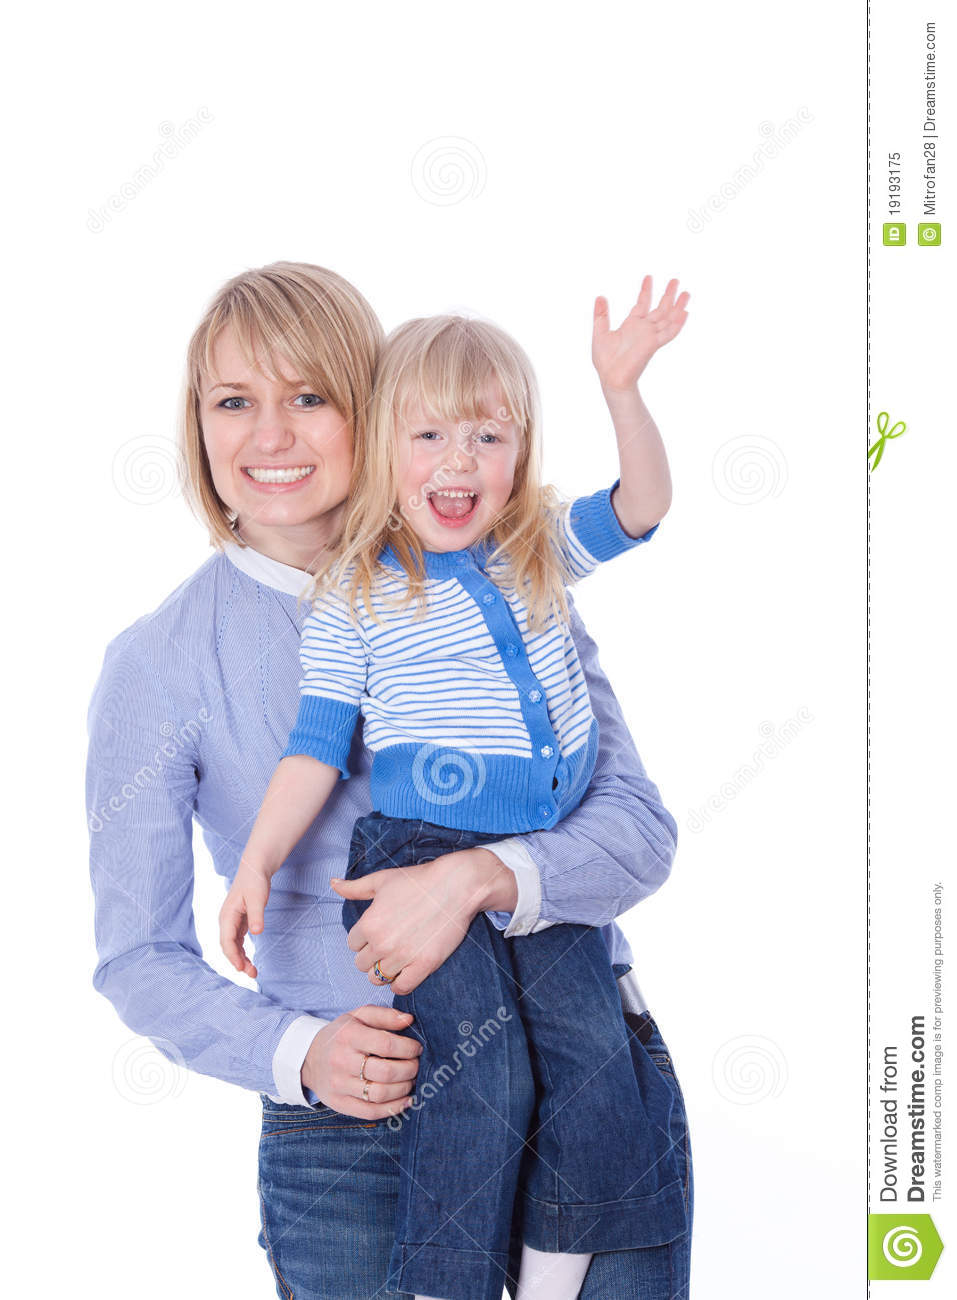 Happy Smiling Mom And Child Waving Hello Royalty Free ...